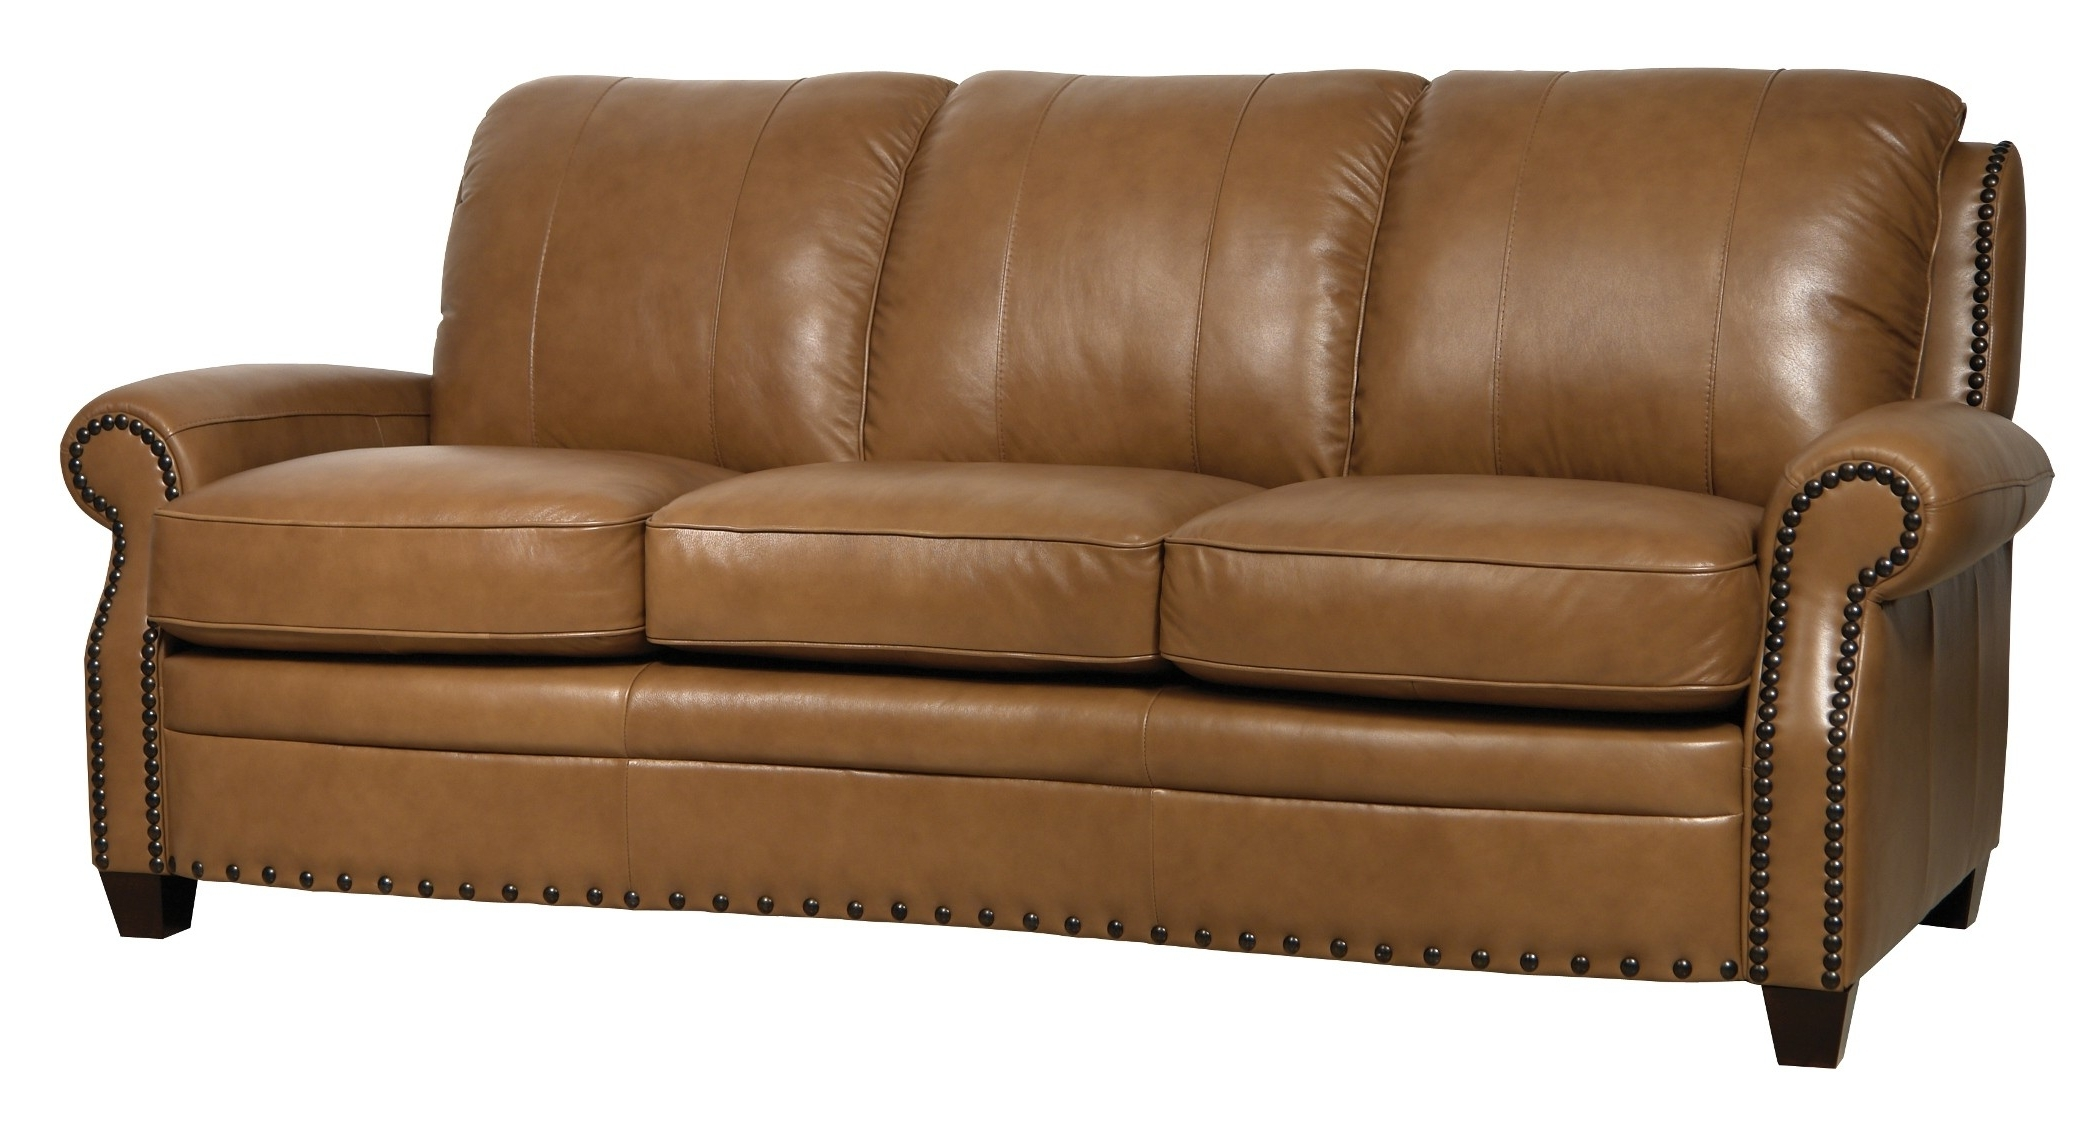 Newest Colored Leather Sofas And Ultra Modern Camel Leather Sectional In Camel Sectional Sofas (View 12 of 20)